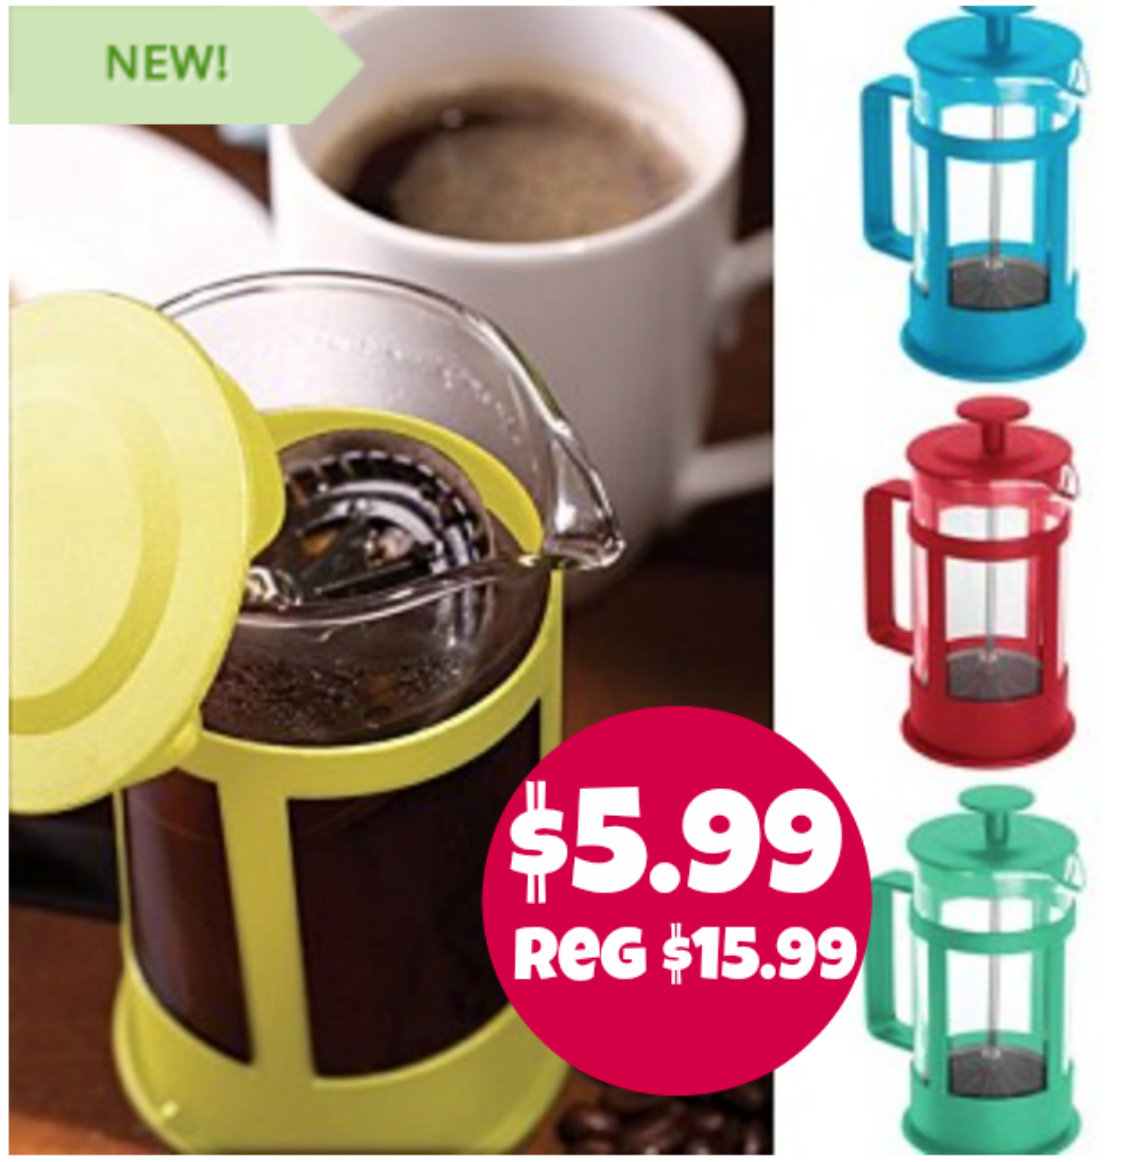 http://www.thebinderladies.com/2014/12/13deals-single-cup-12-ounce-french.html